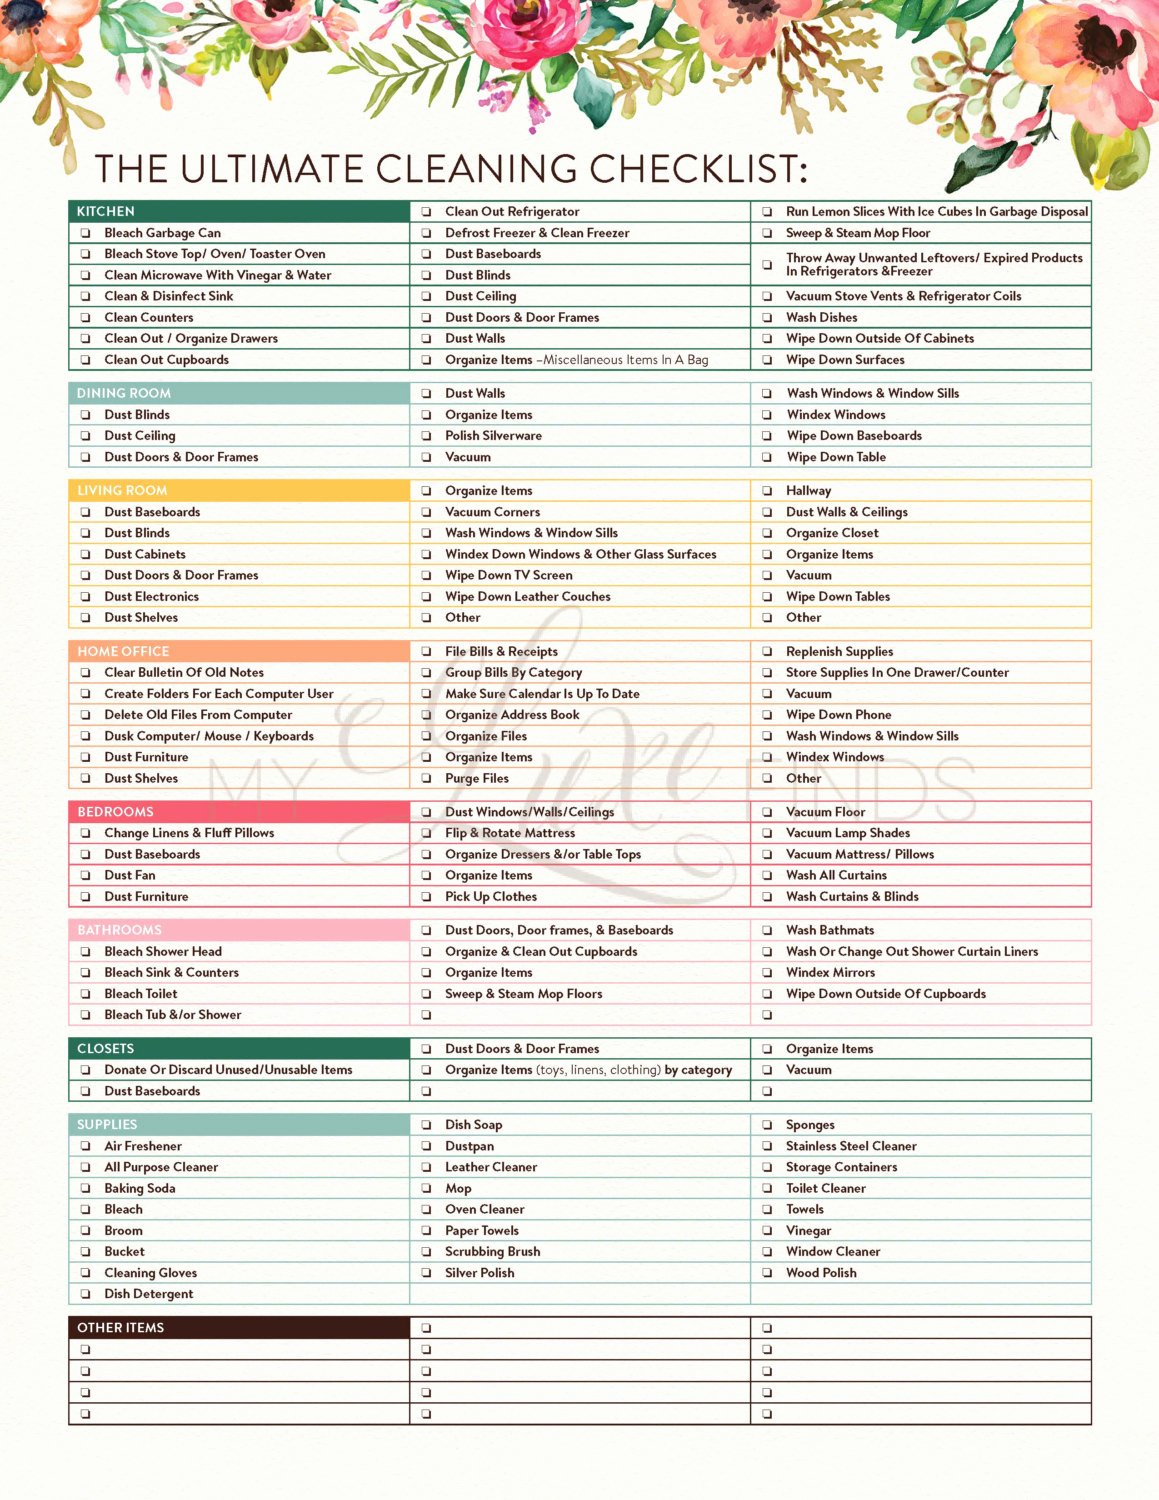 Deep Cleaning Checklist for Housekeeper New the Ultimate House Cleaning Checklist Printable Pdf